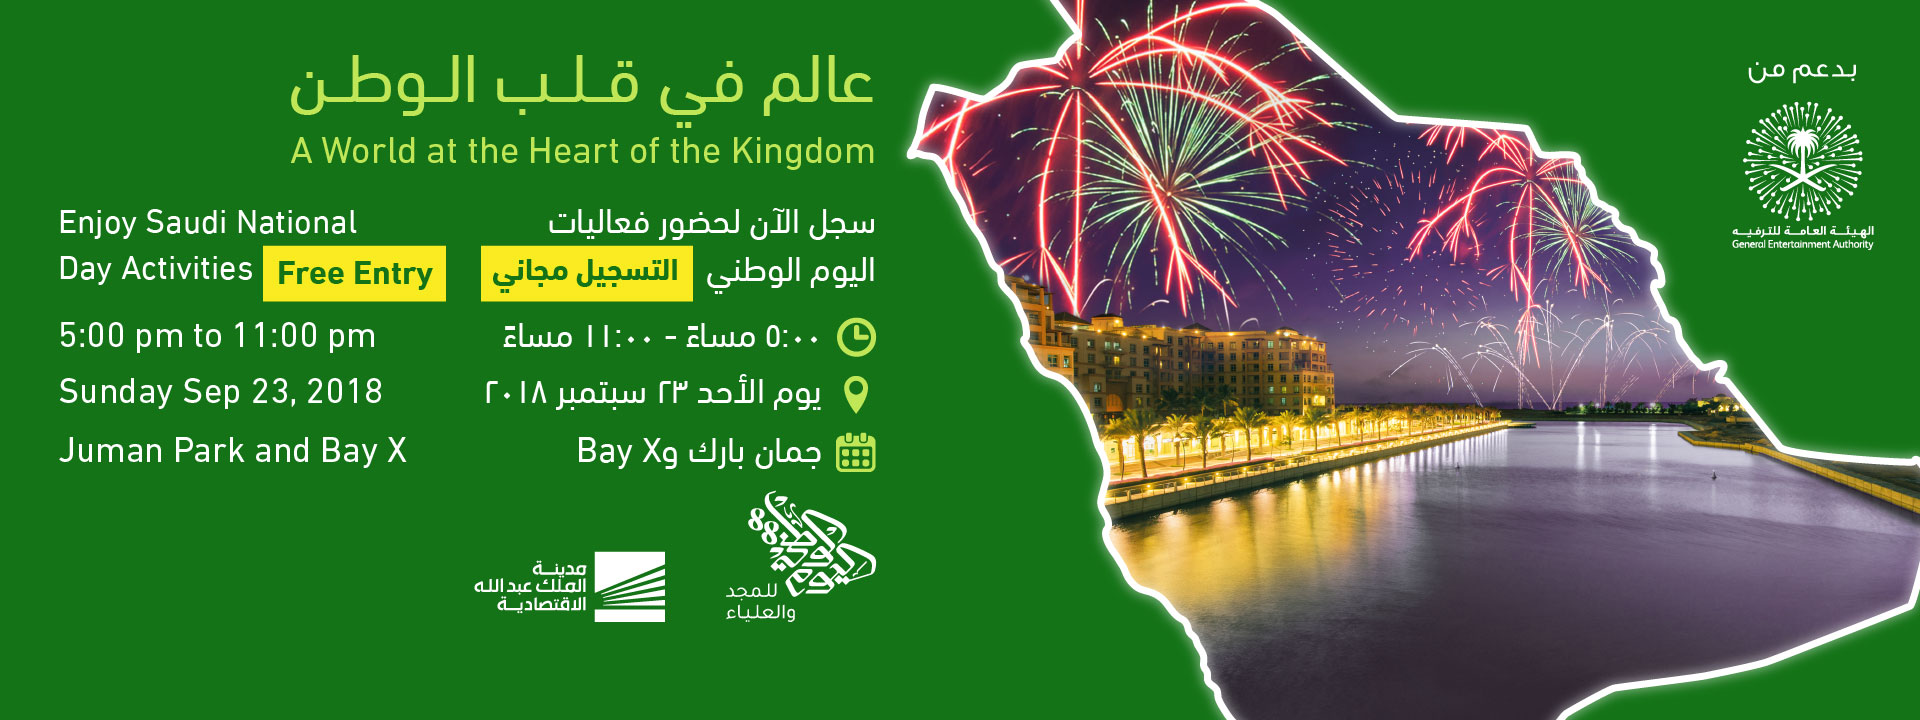 KAEC National Day - Visit KAEC